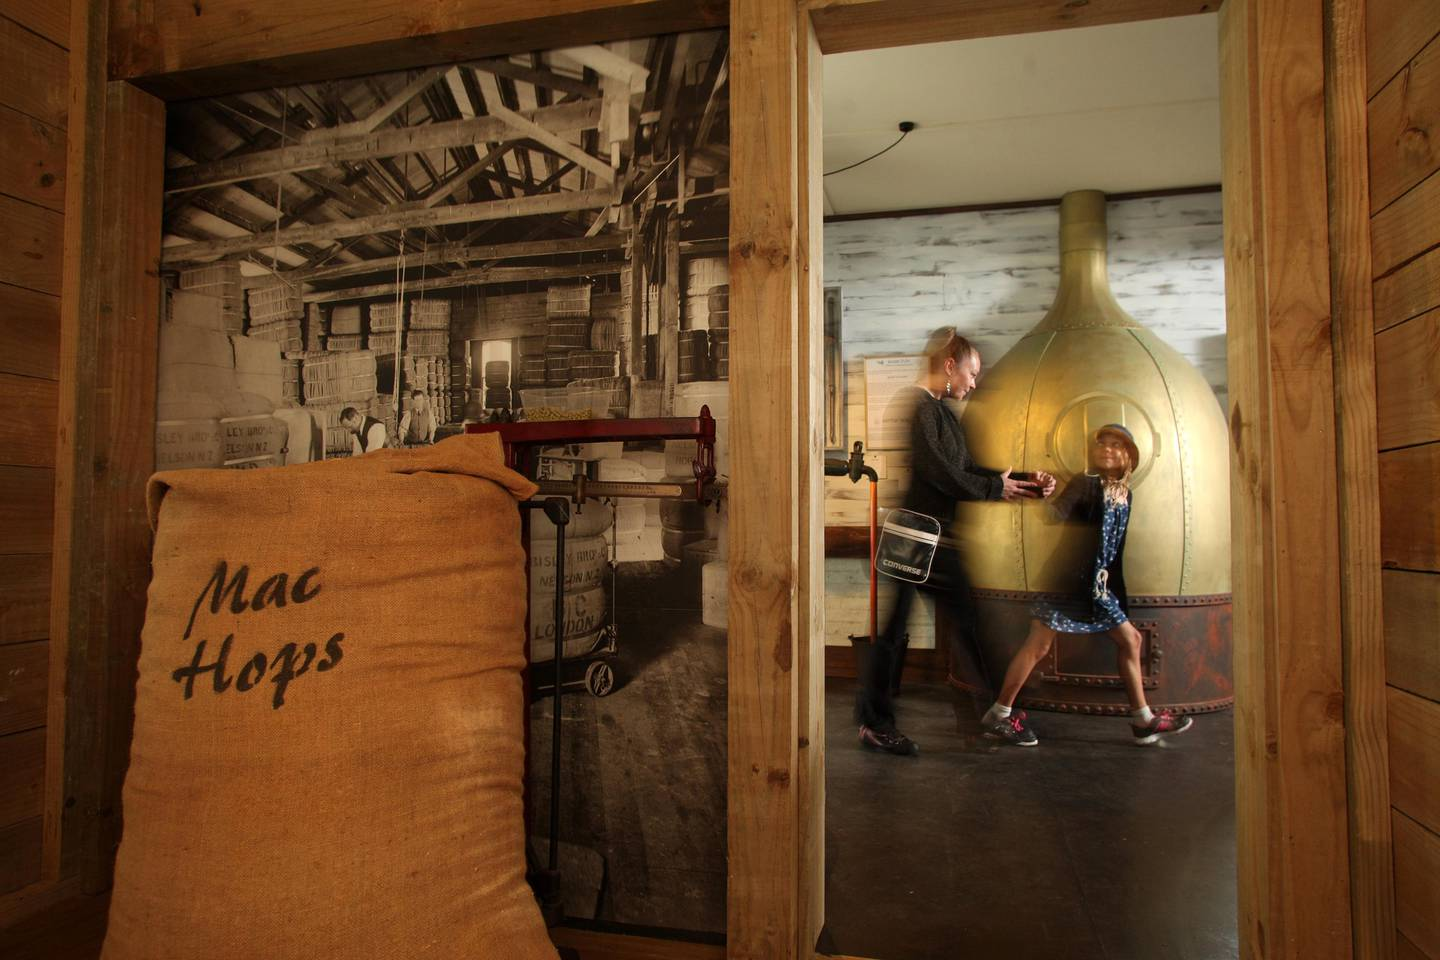 The beer and hops museum at Founders Park. Photo: Supplied via NZH